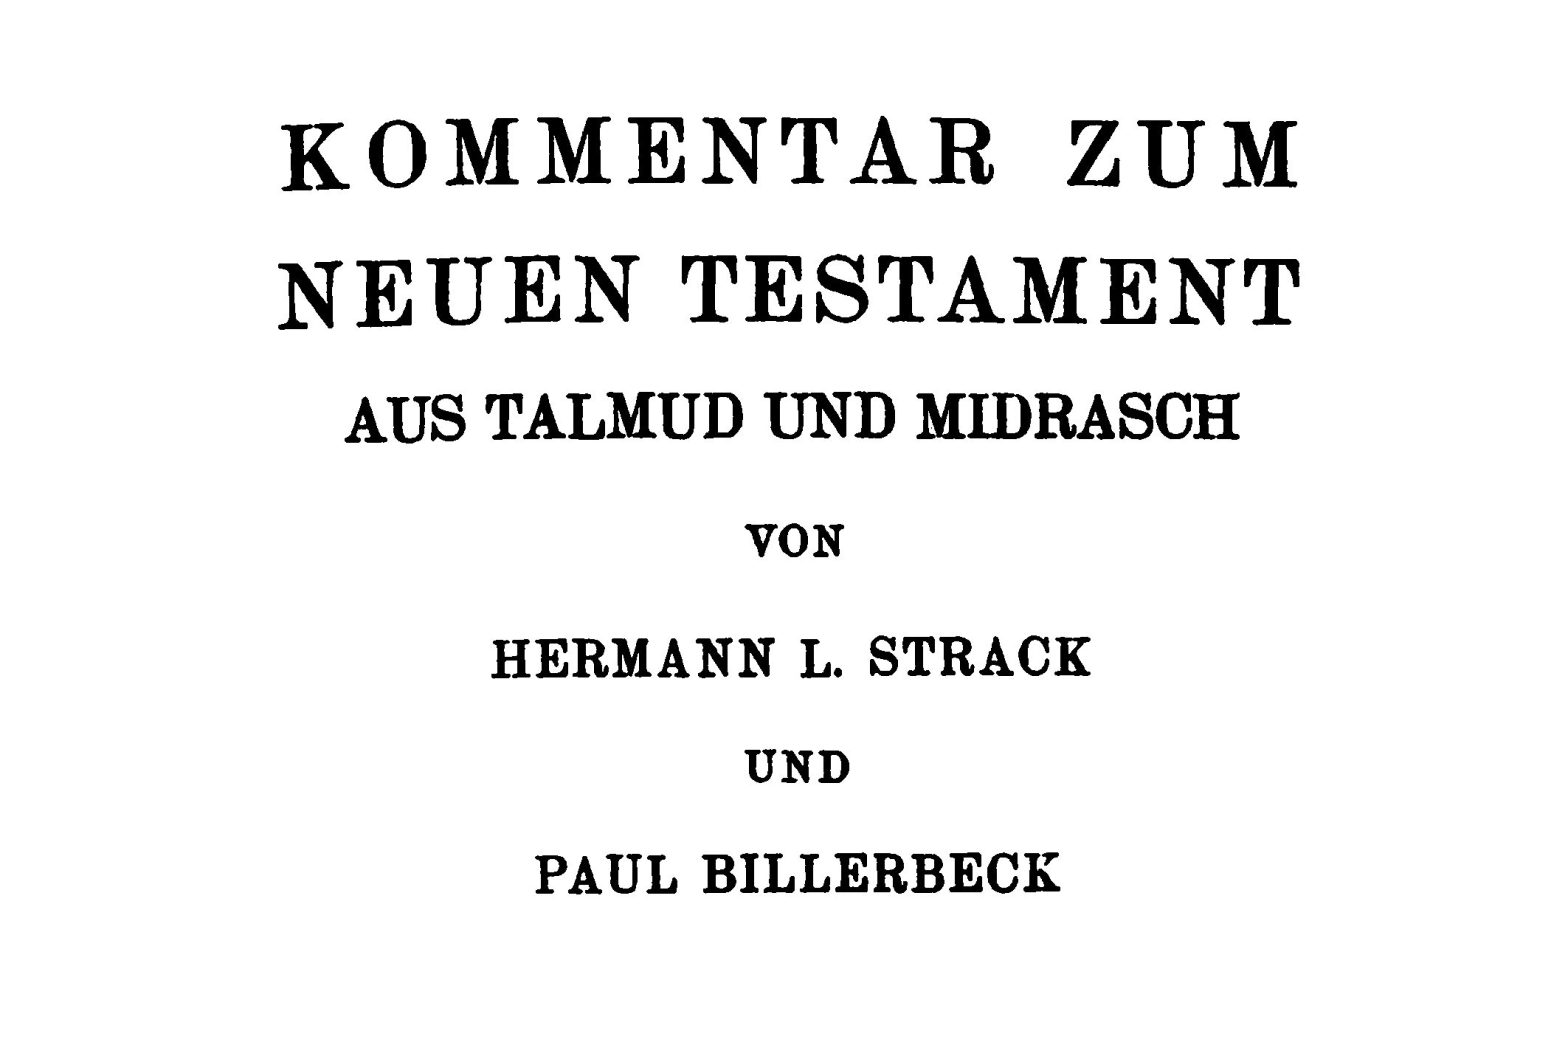 Strack and Billerbeck partial title page